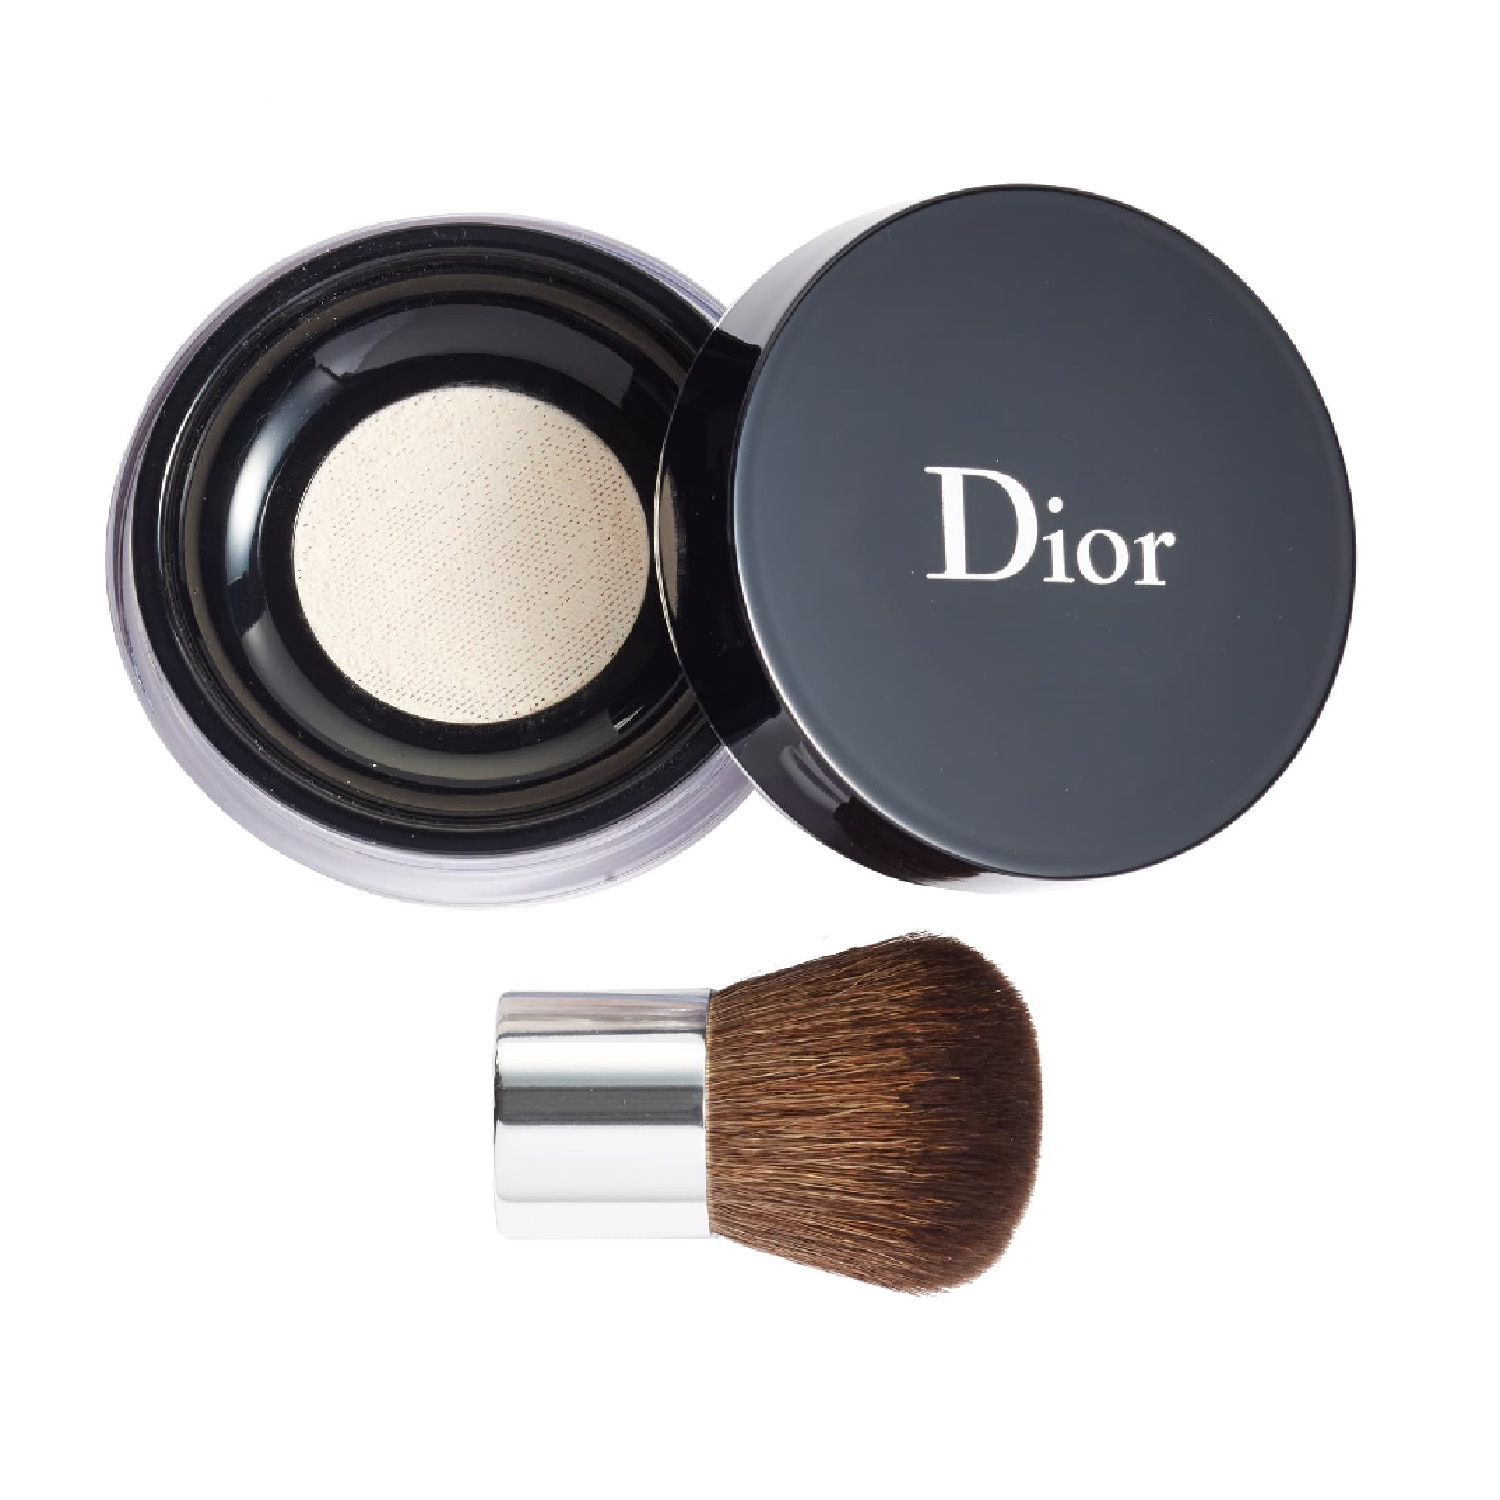 DIORSKIN FOREVER & EVER CONTROL EXTREME PERFECTION MATTE FINISH INVISIBLE LOOSE SETTING POWDER